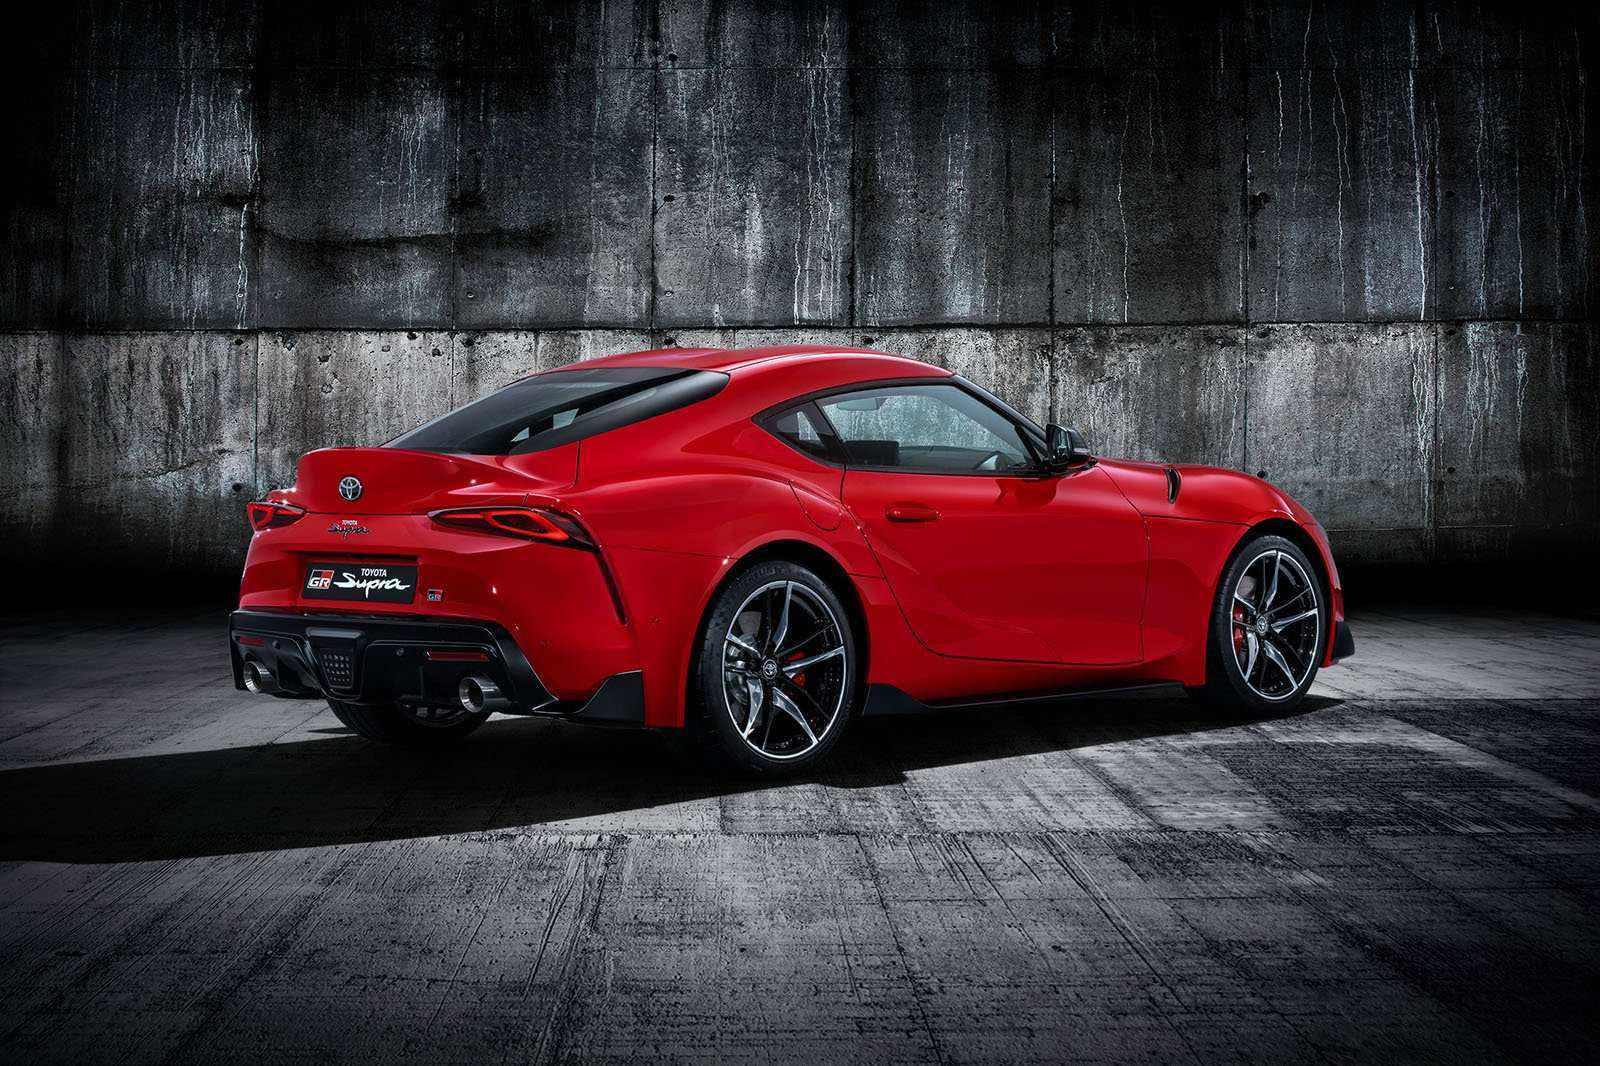 46 Great 2019 Toyota Supra Update Style by 2019 Toyota Supra Update